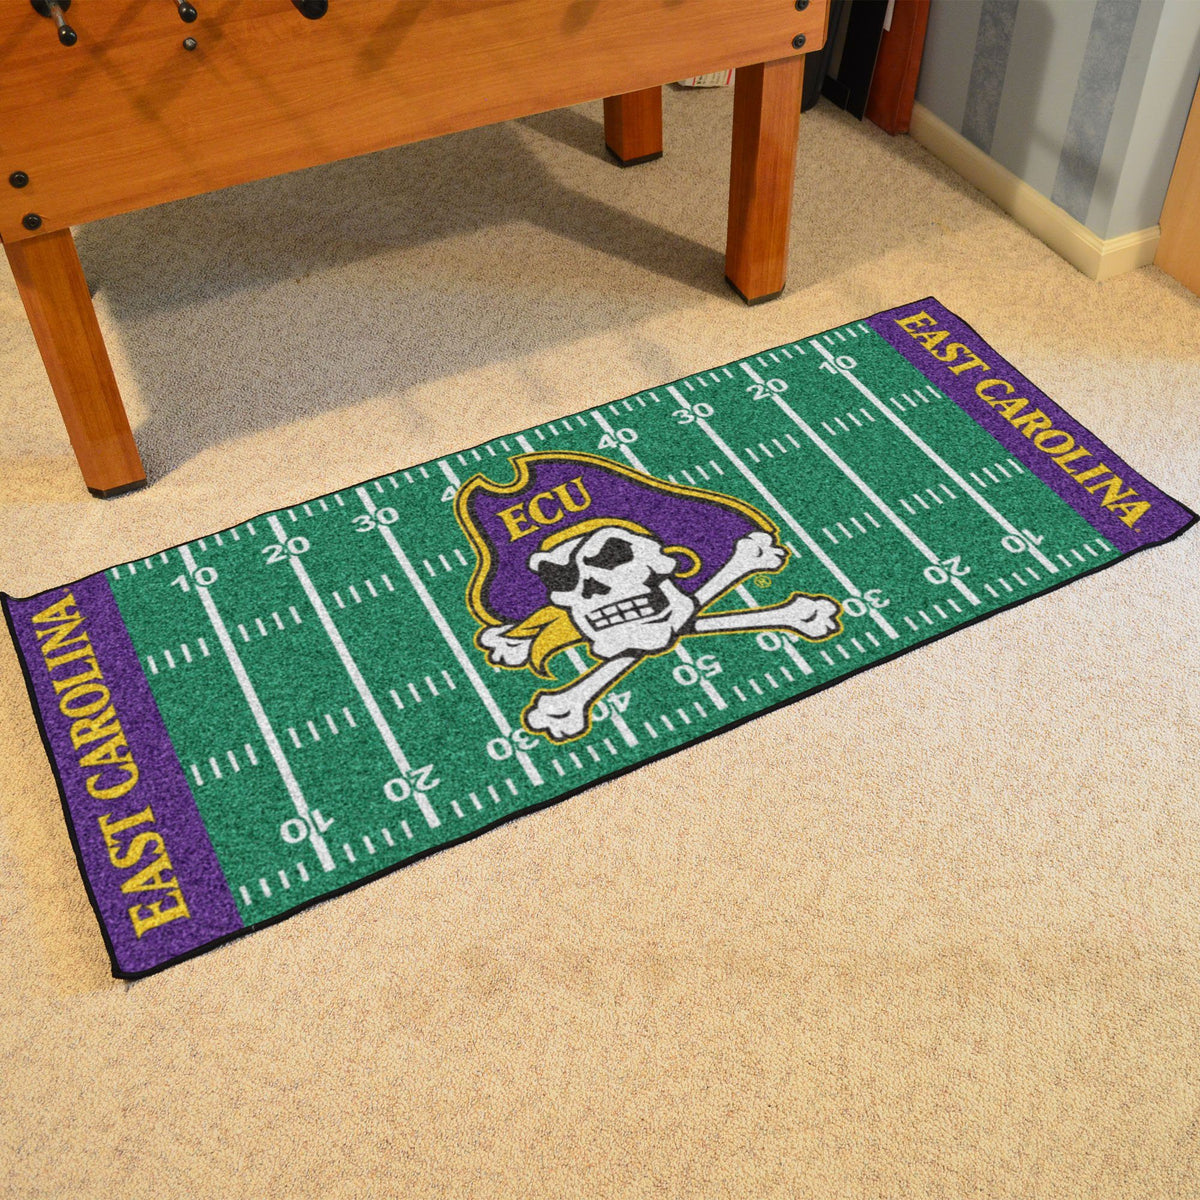 Collegiate - Football Field Runner Collegiate Mats, Rectangular Mats, Football Field Runner, Collegiate, Home Fan Mats East Carolina